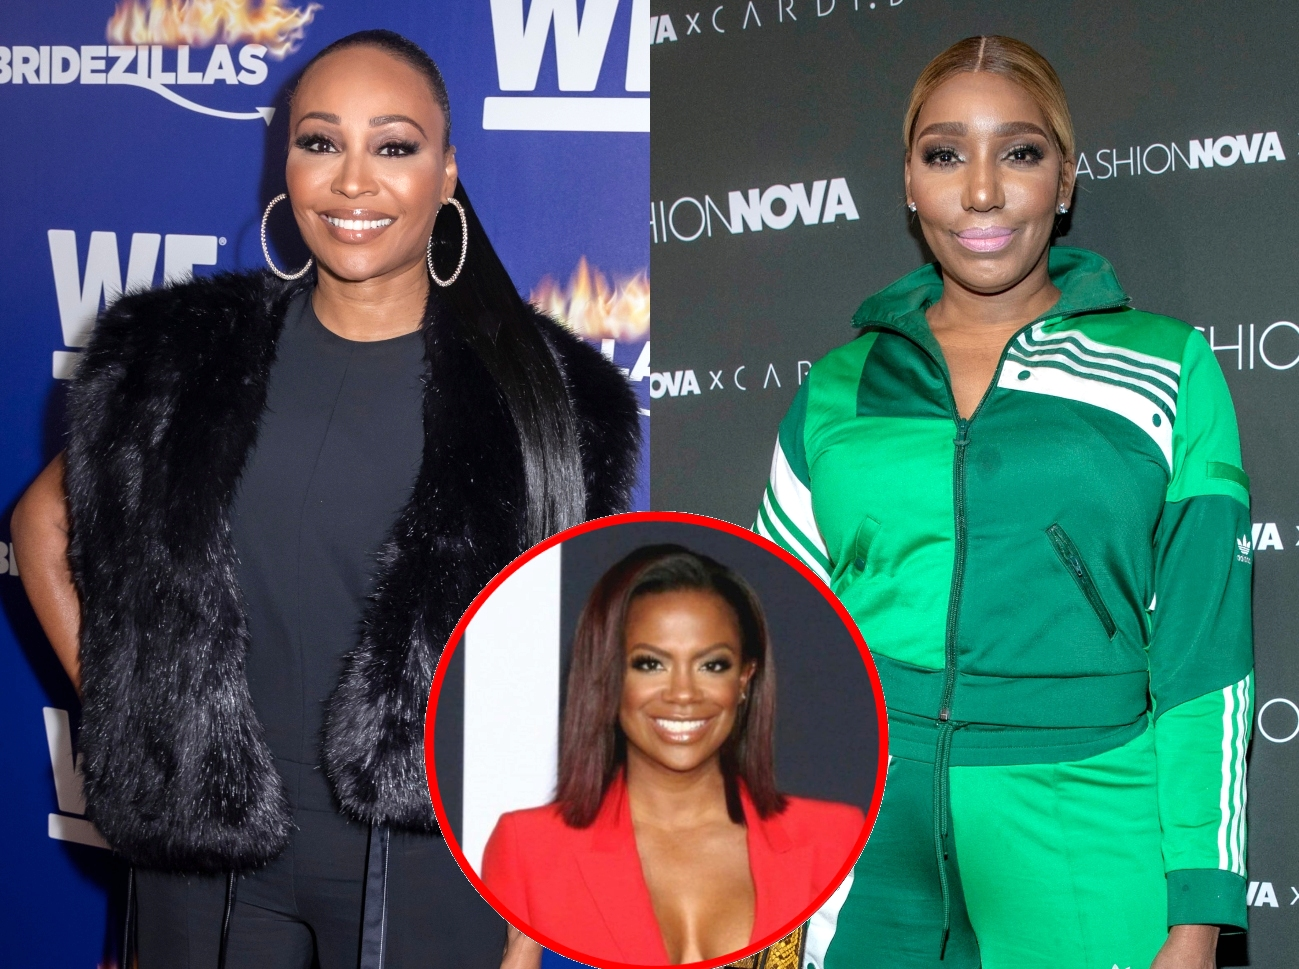 Cynthia Bailey Insists She Didn't Know Kenya Moore Was Attending The RHOA Finale Party, Explains 'Mic'd Up' Conversation With Kandi Burruss